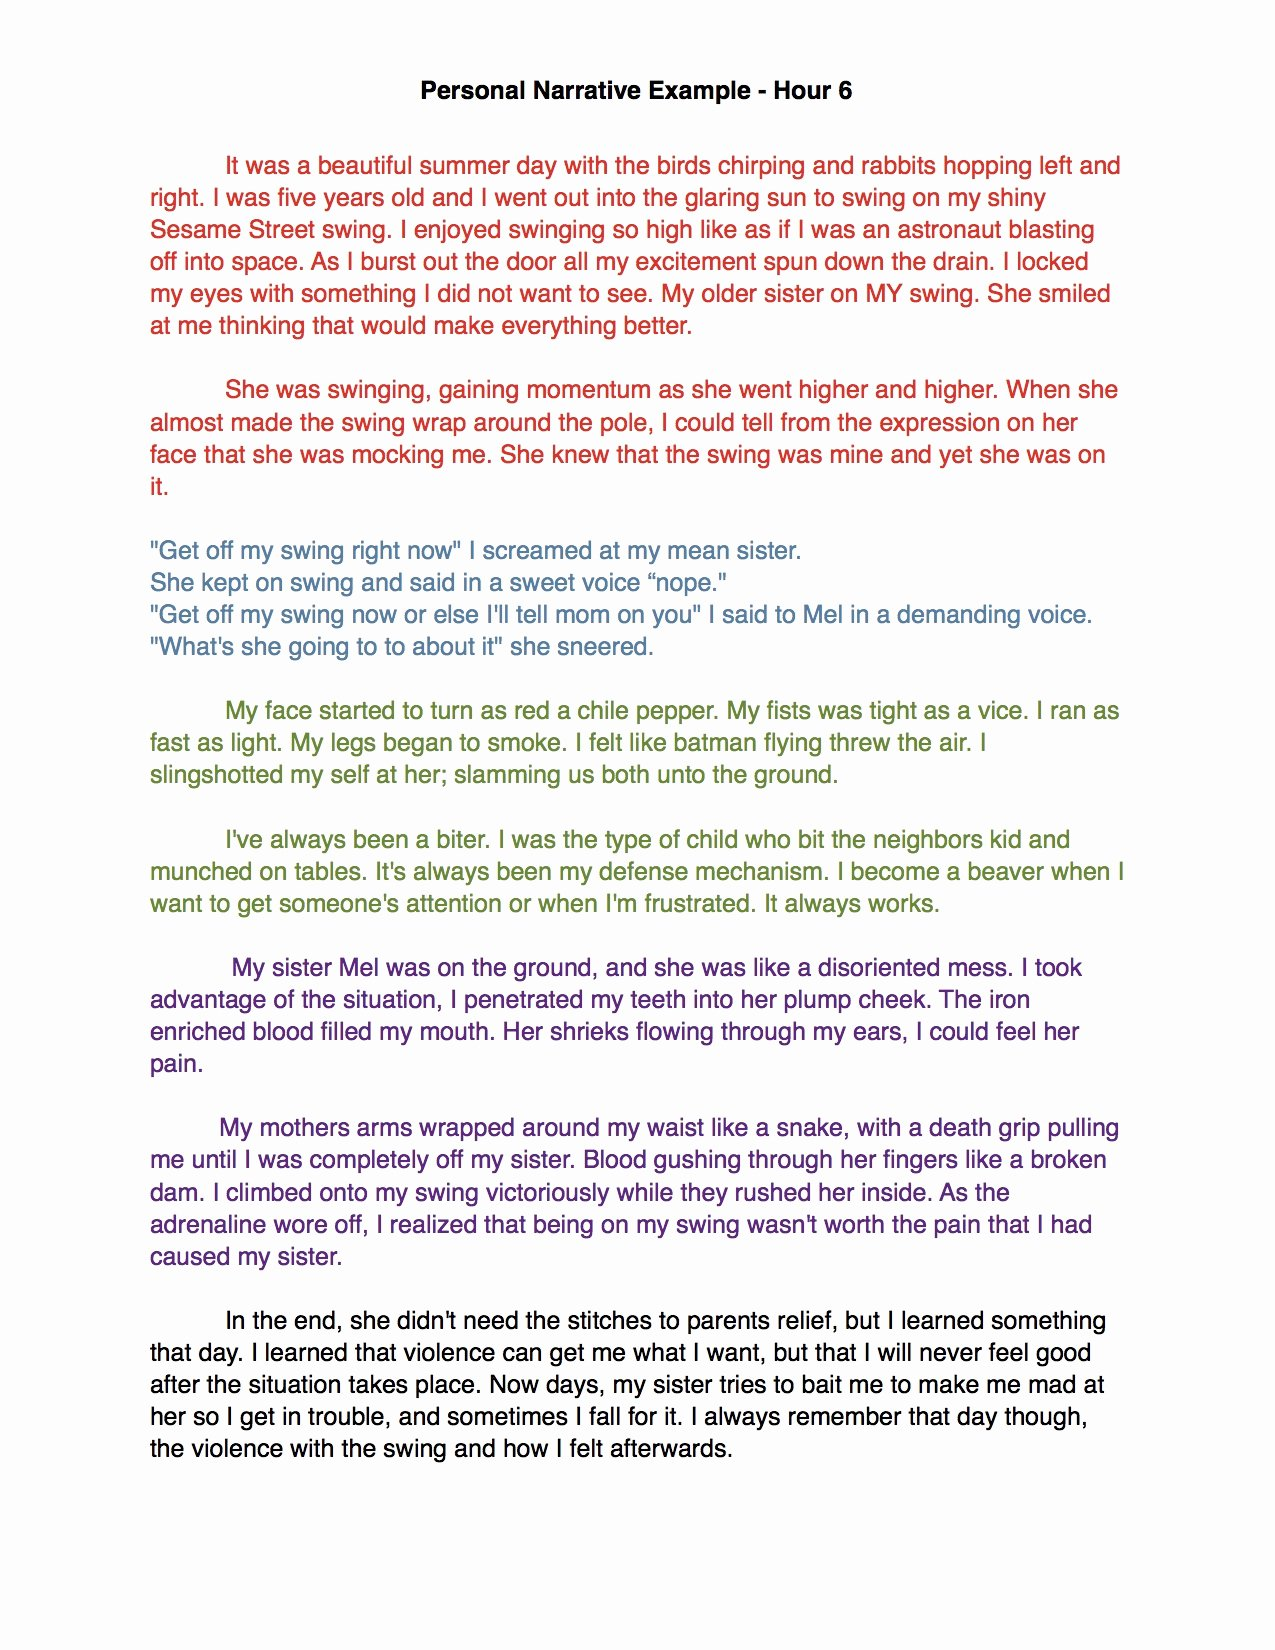 Sample Of Narrative Essay Lovely High Five for Friday 12 12 14